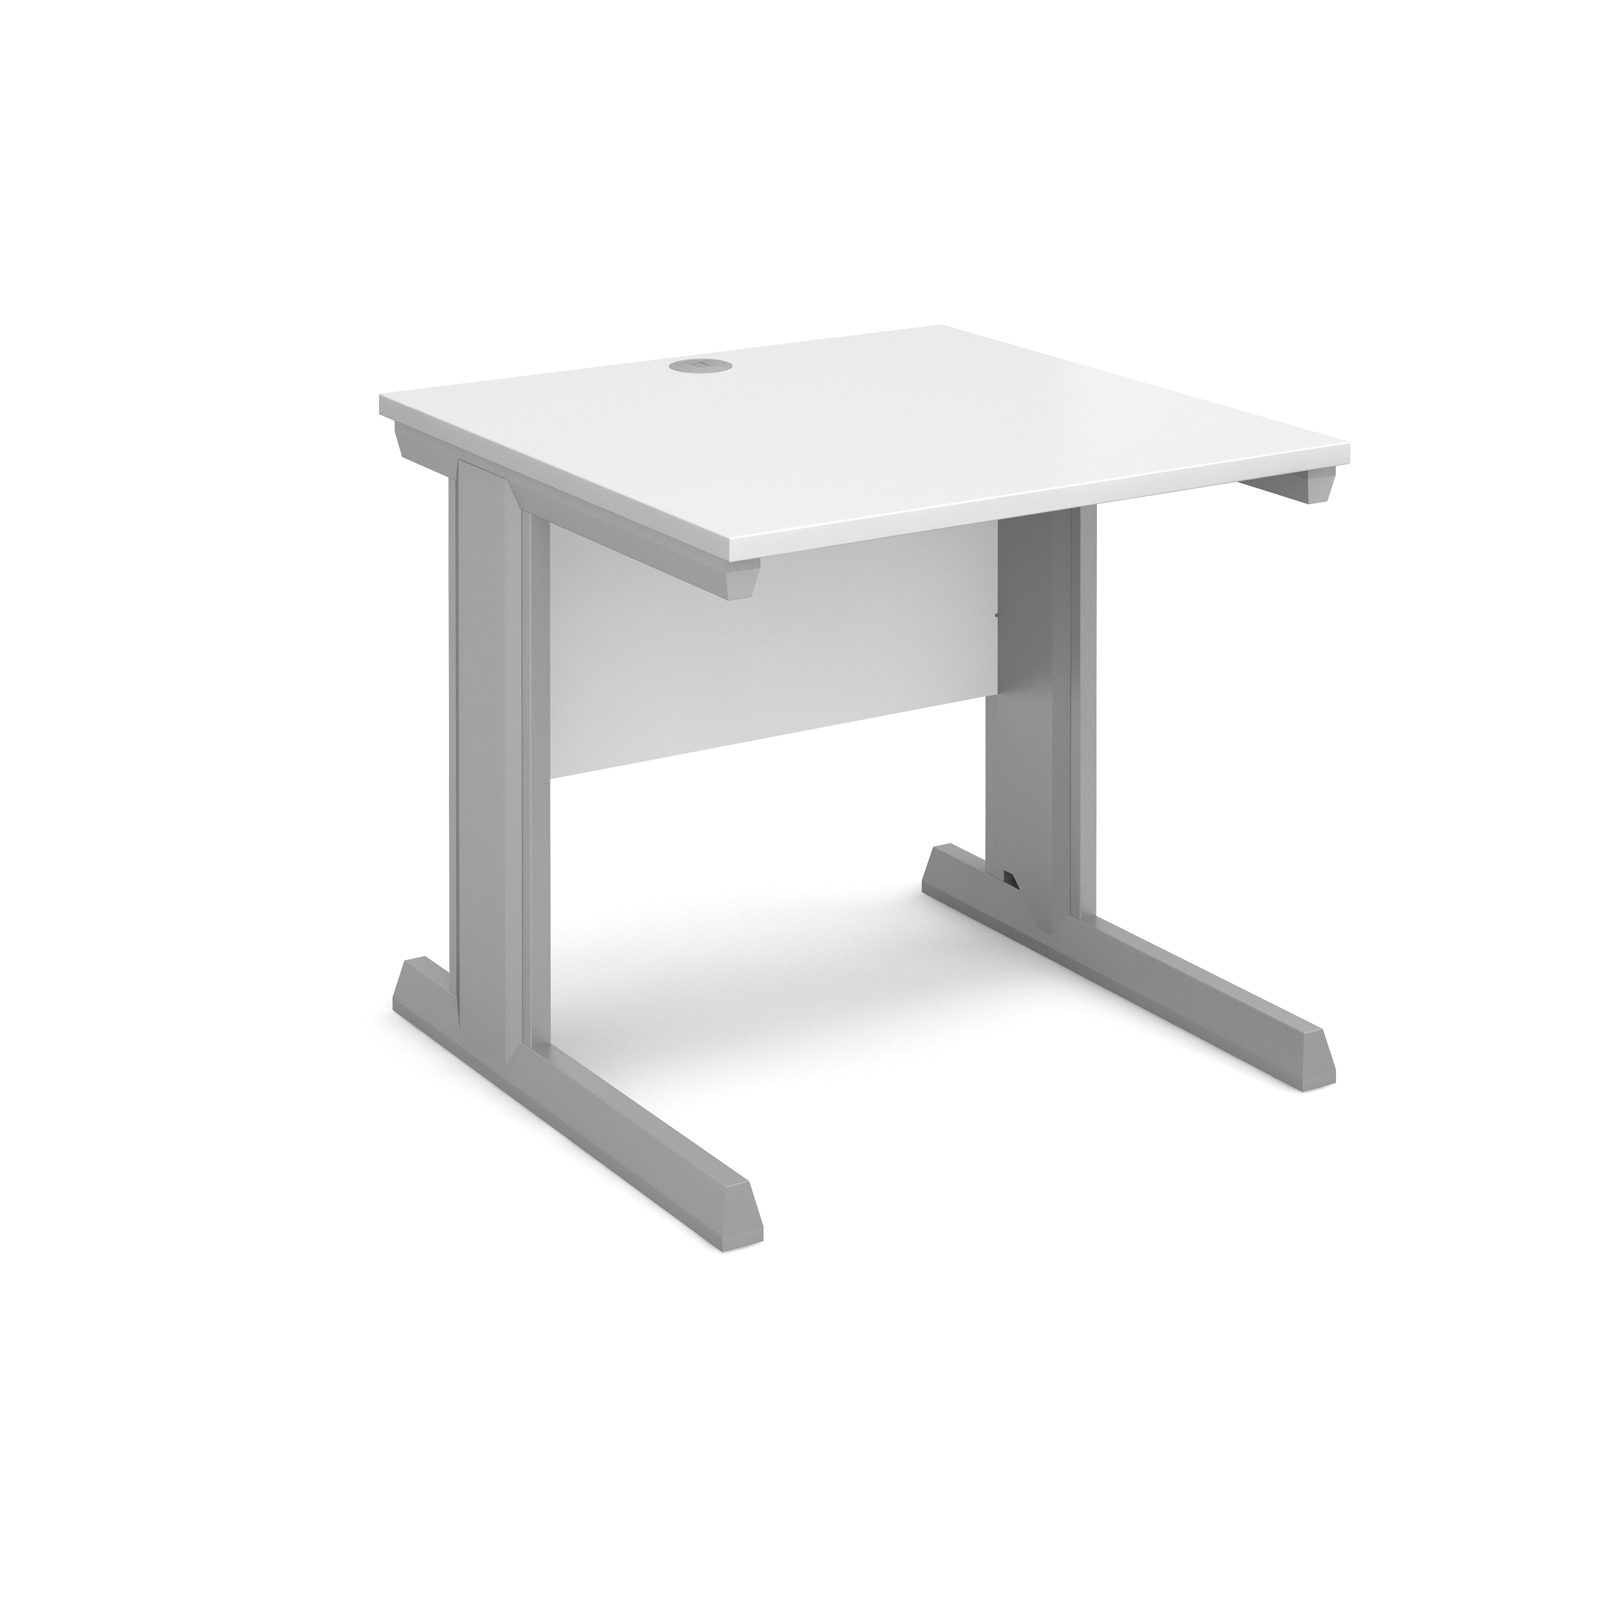 Dams Vivo II Straight Desk 800mm White